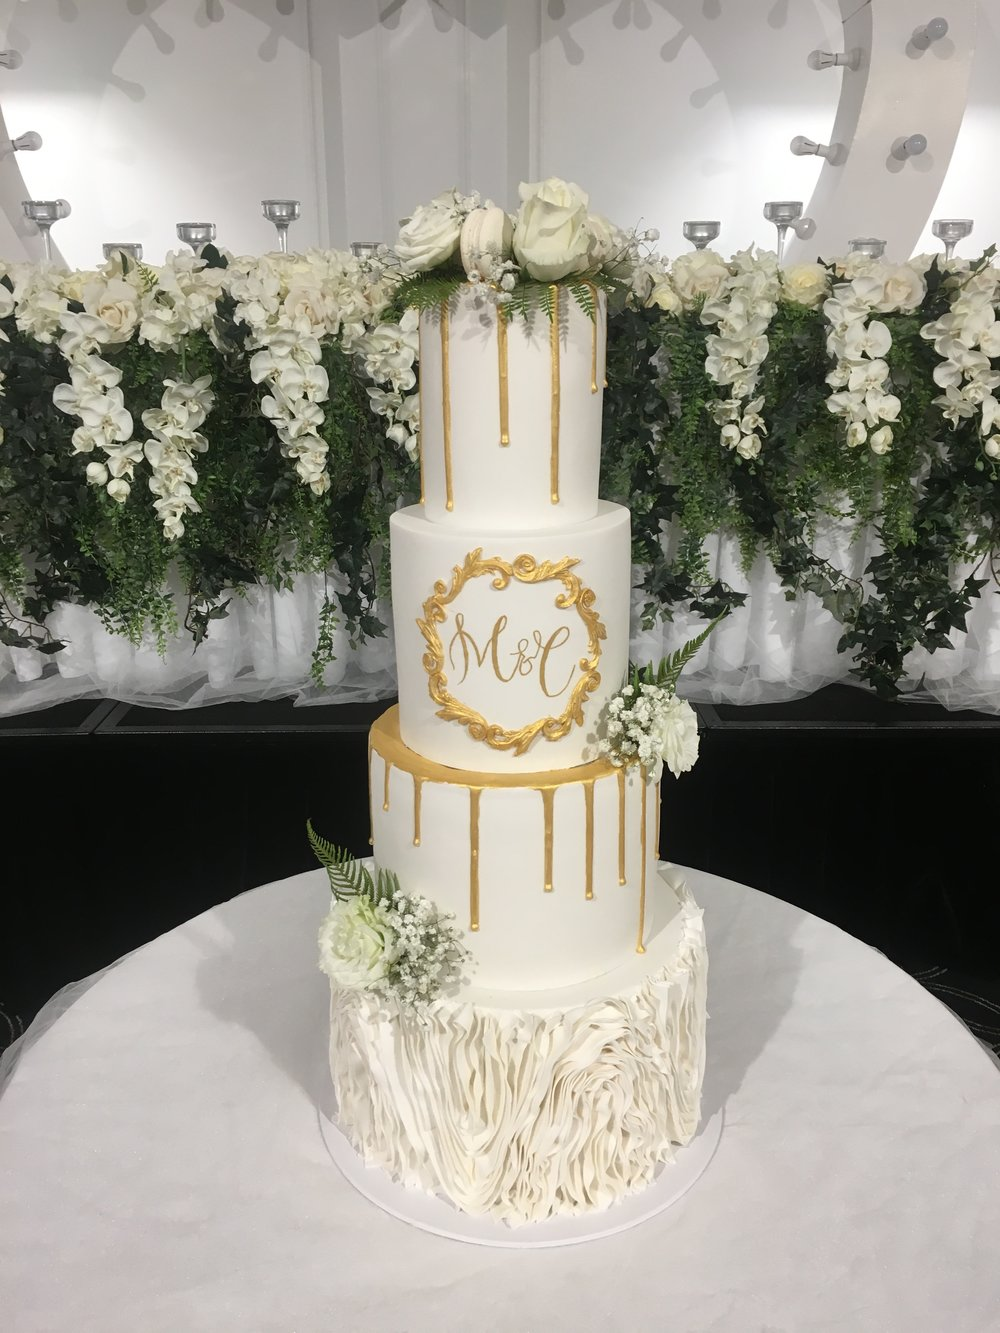 Copy of Wedding Cake with Hand-Painted Gold Monogram